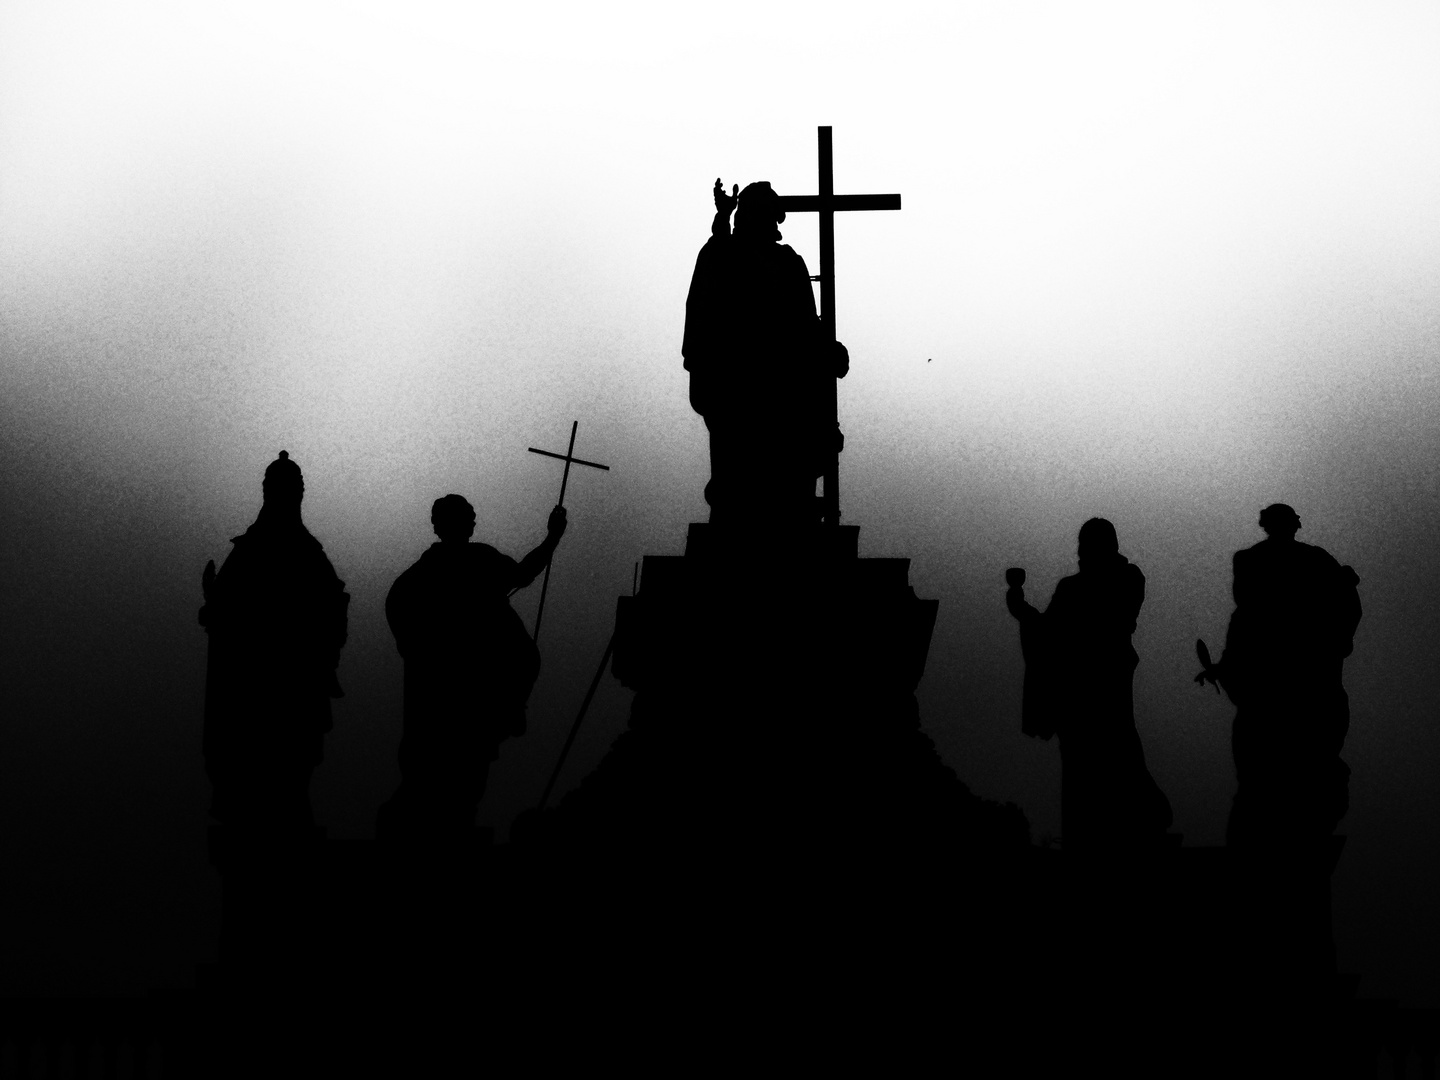 Saints in the mist